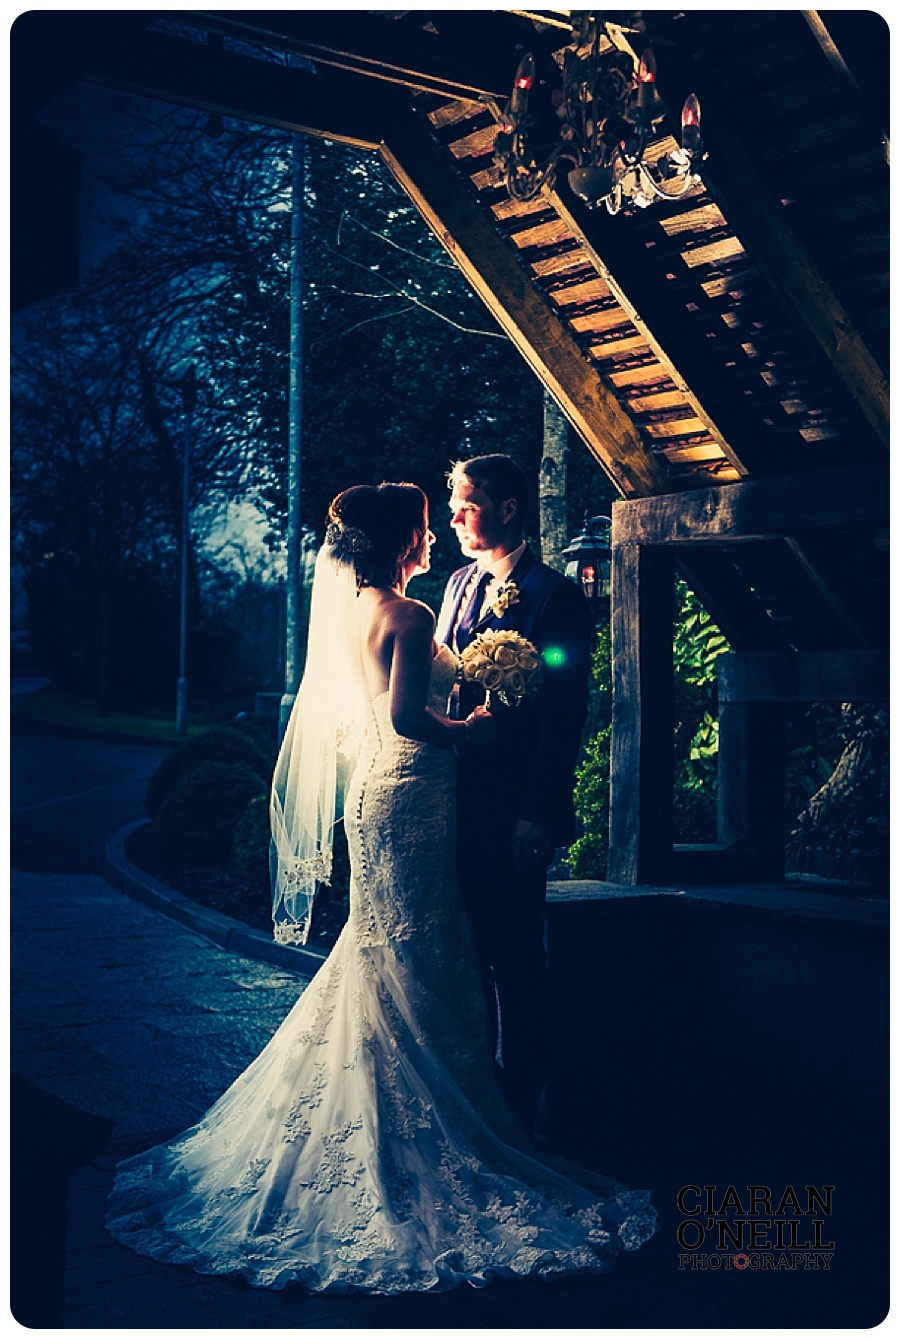 gale-adams-wedding-at-the-galgorm-resort-spa-by-ciaran-oneill-photography-20